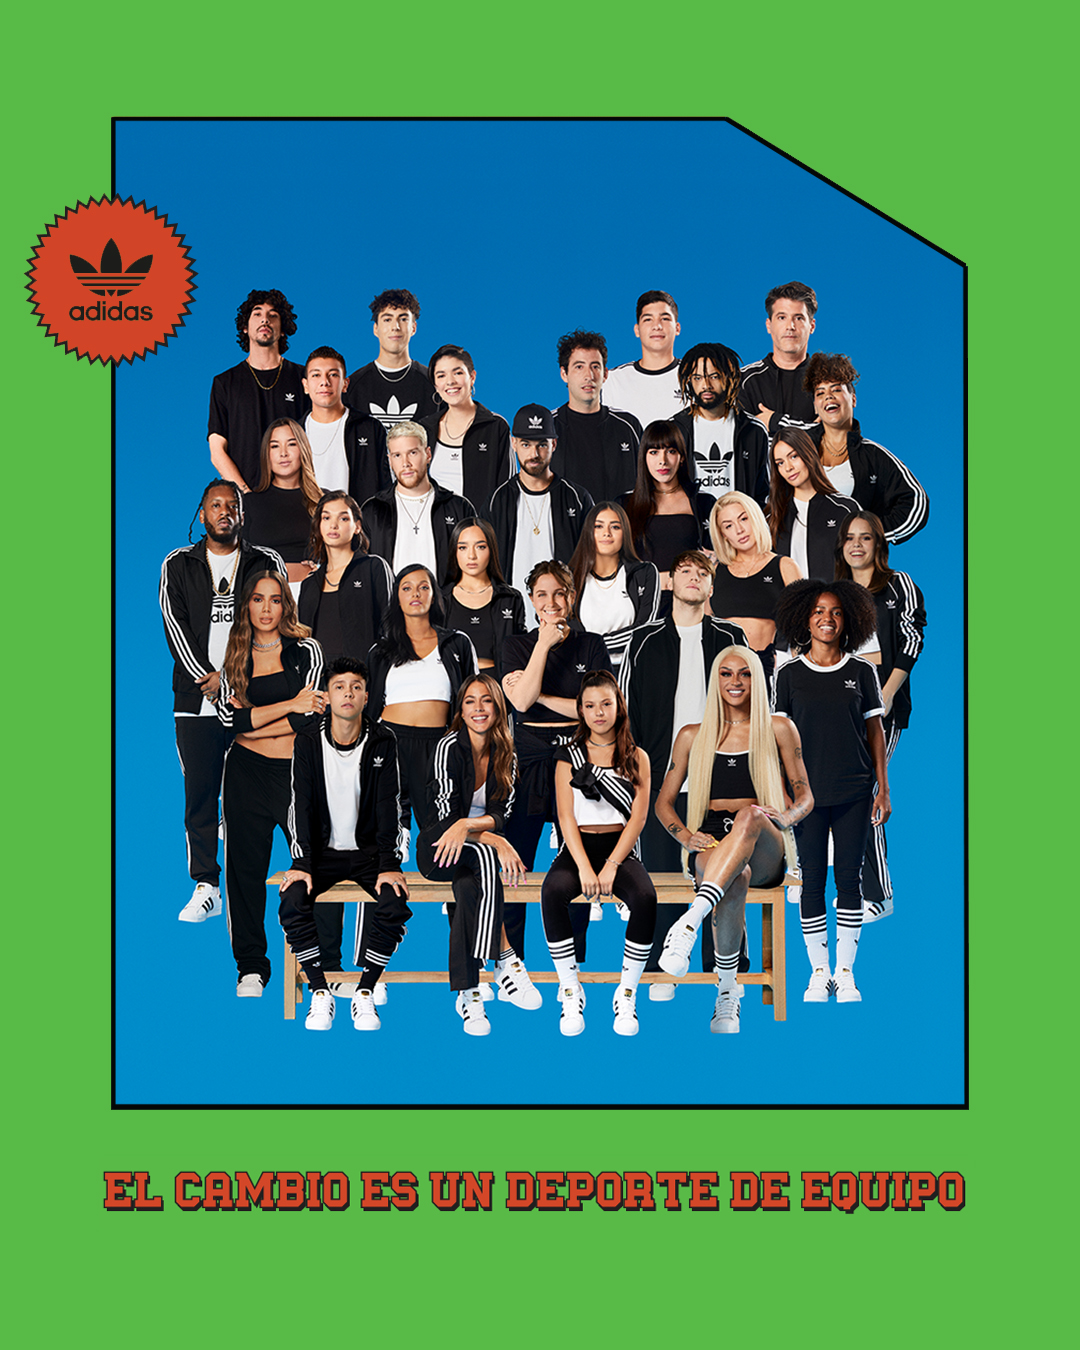 50 años de adidas Superstar team latinoamerica